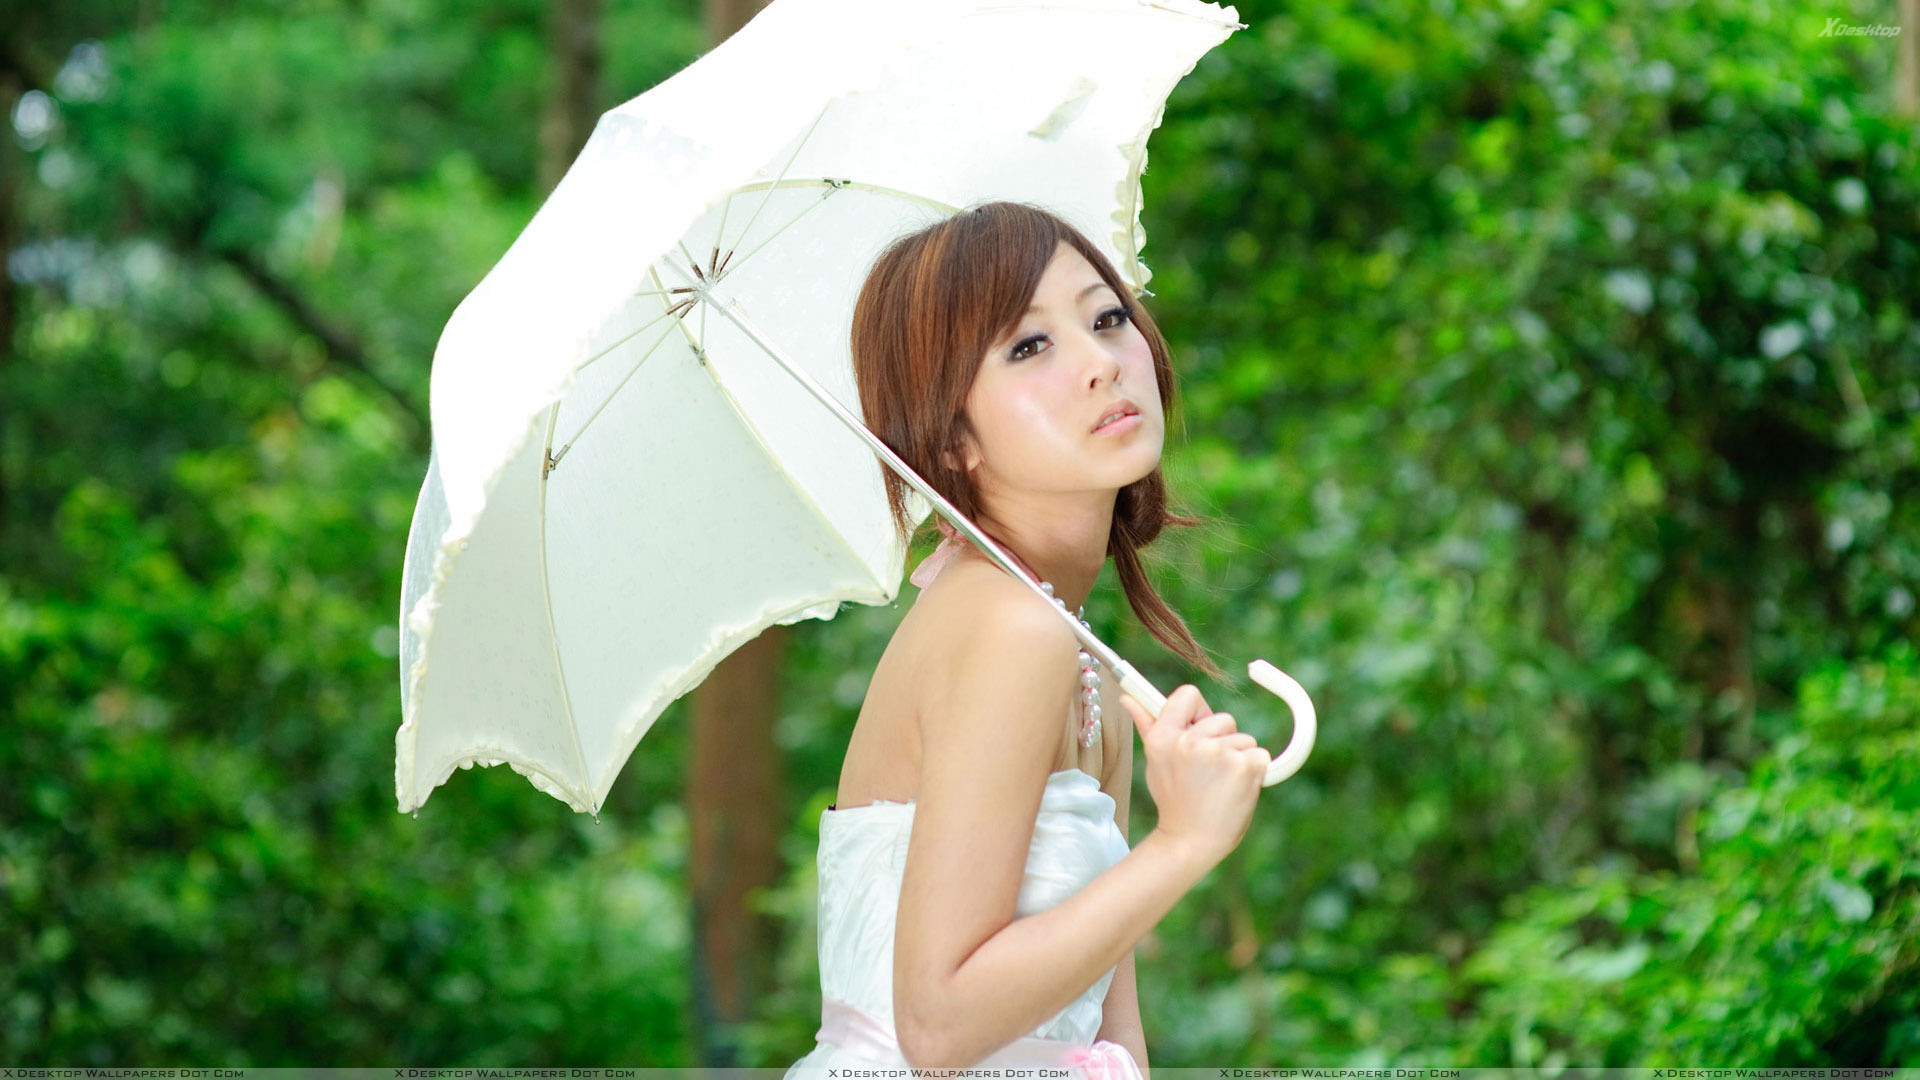 You are viewing wallpaper titled asian girl thinking with white umbrella